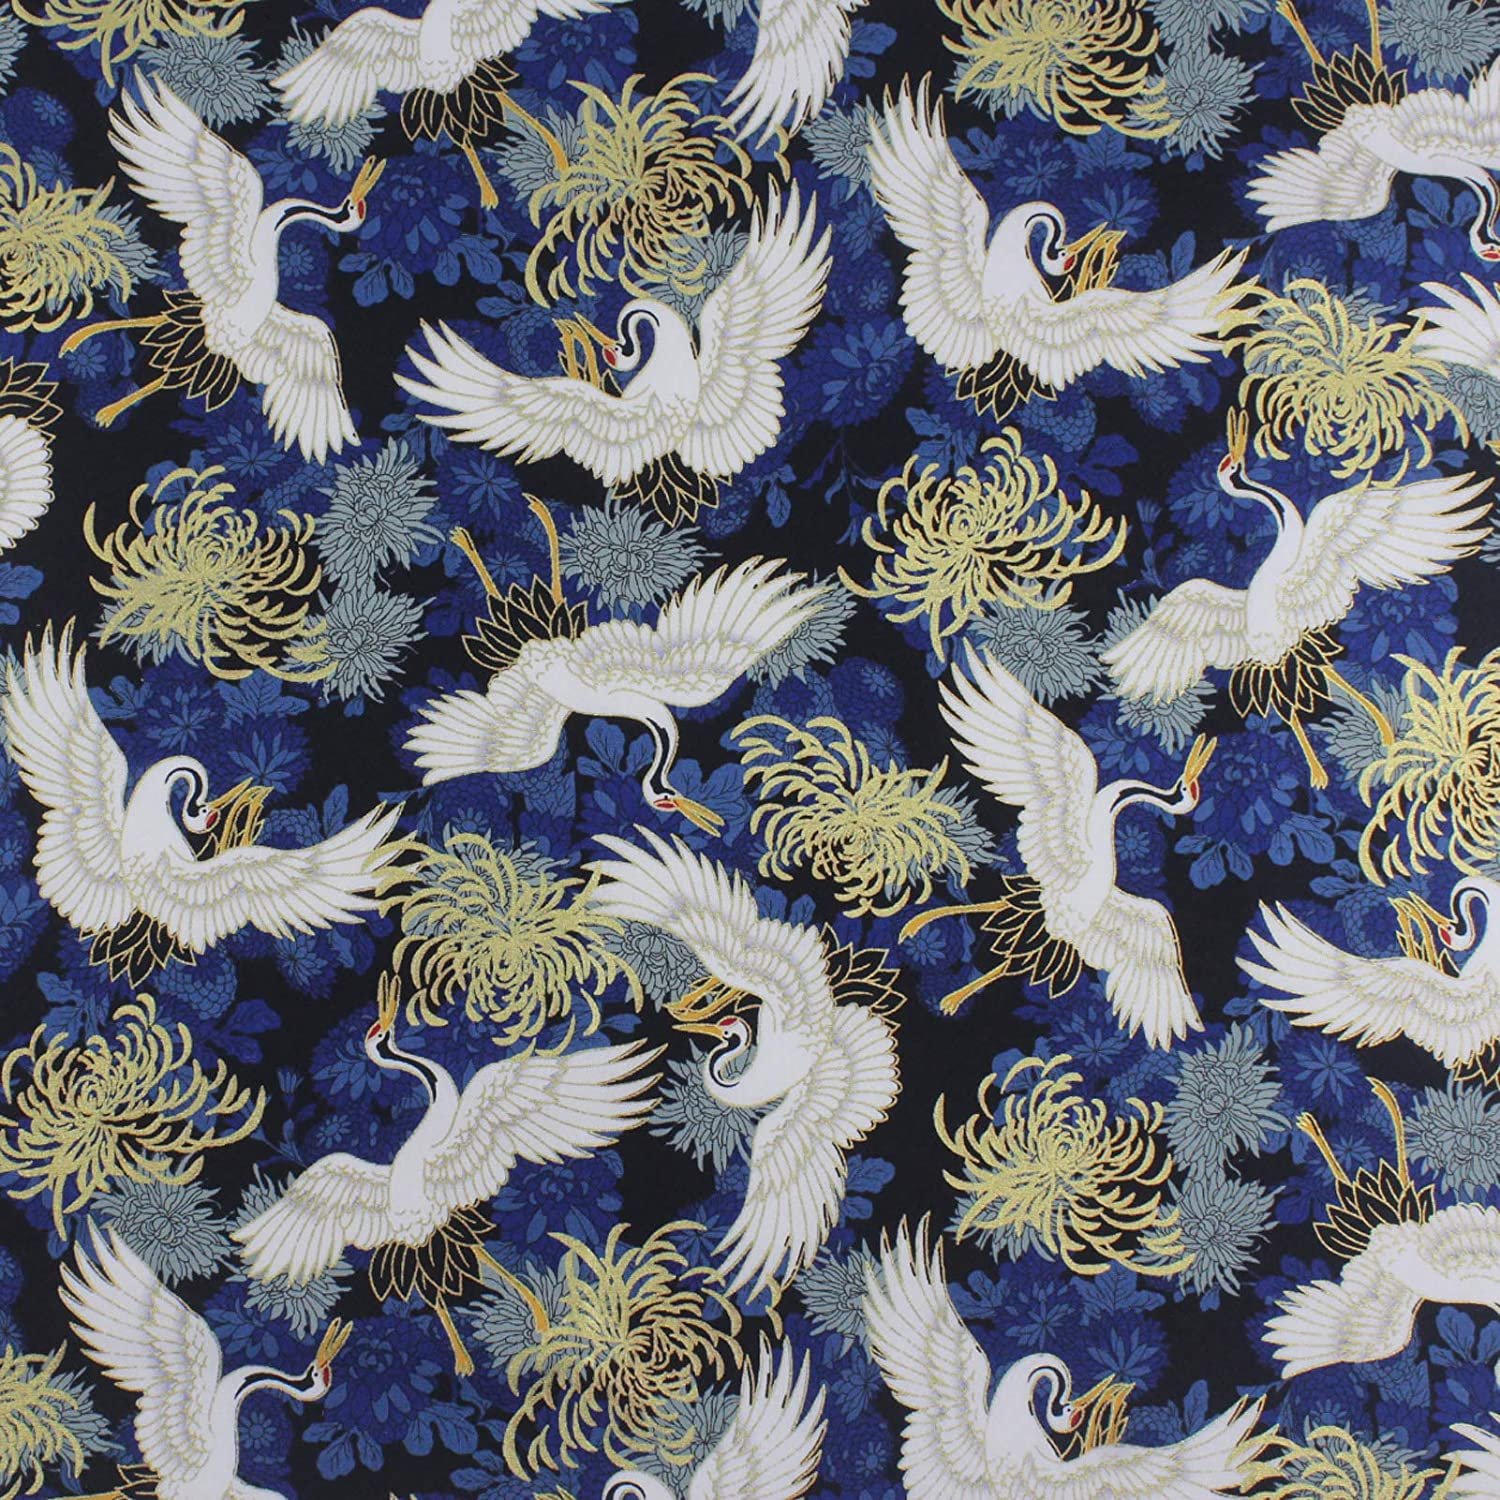 Japanese Traditional Printed Fabric Wrapping, Furoshiki Wrapping Cloth, Gift Wrapping Cloth (Flower and Crane)